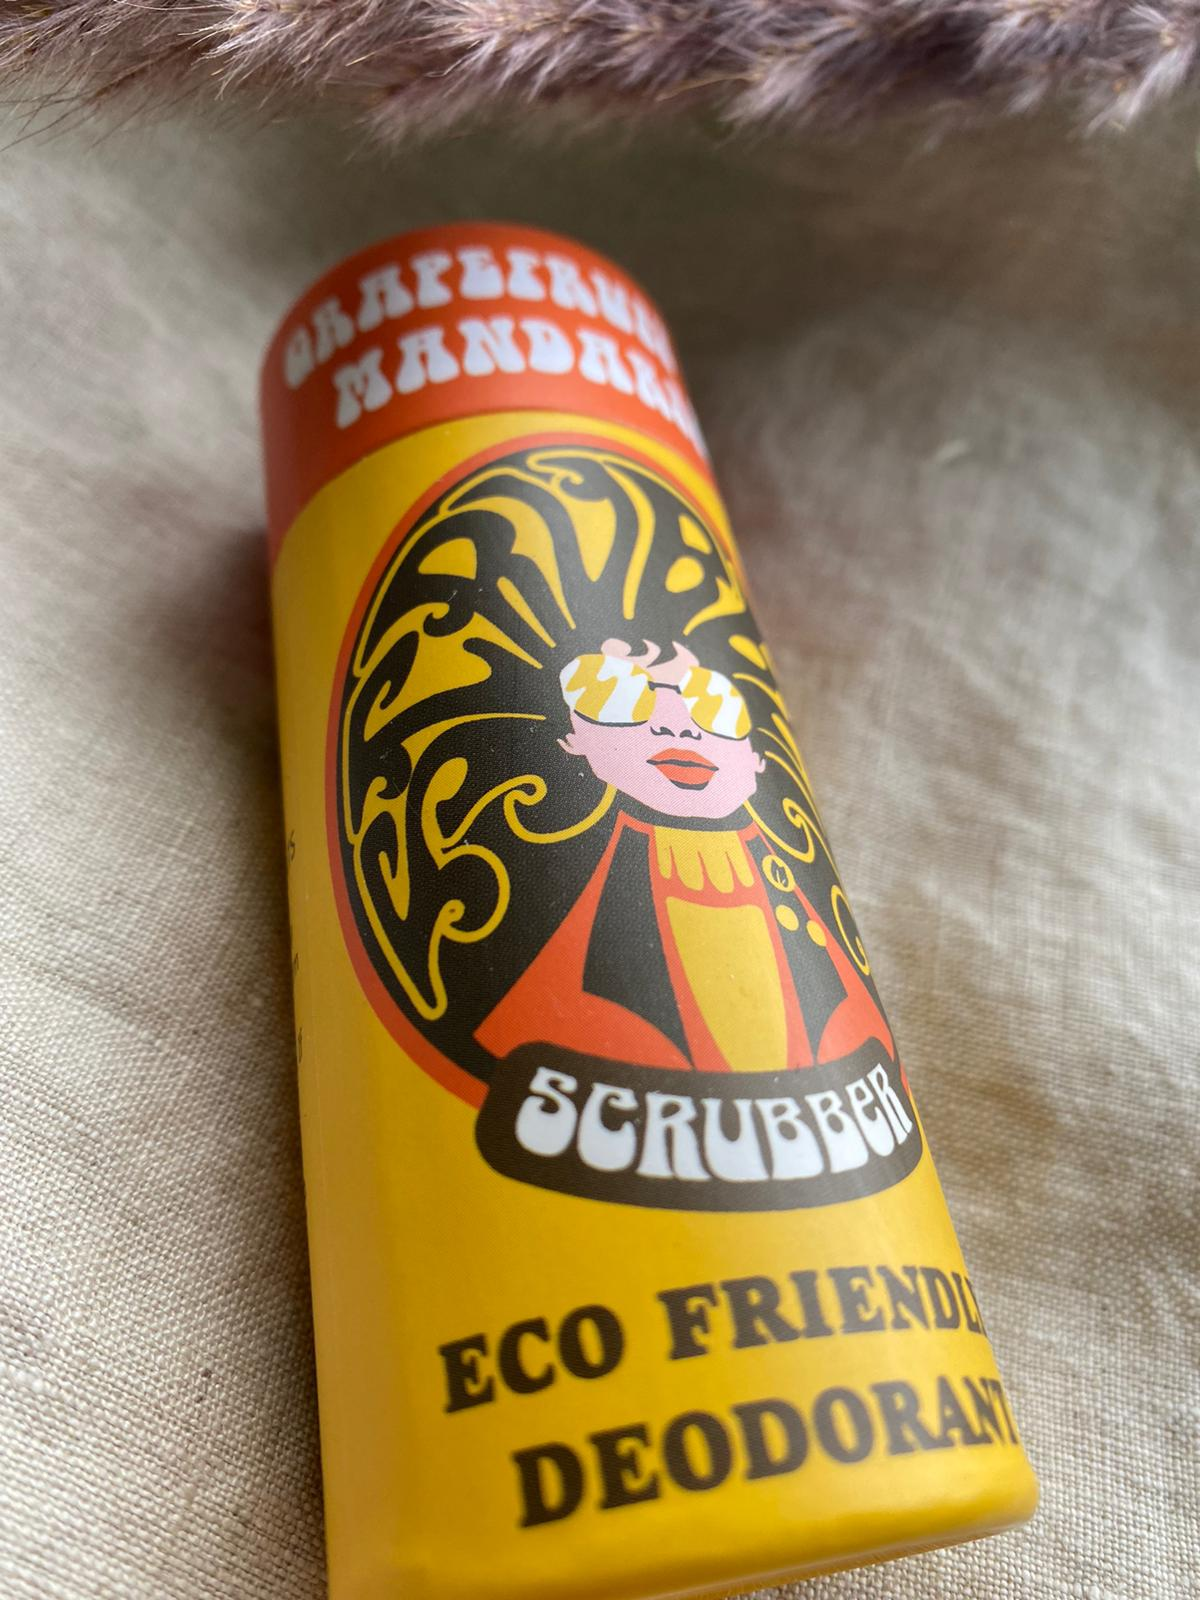 Scrubber Store - Grapefruit & Mandarin - Eco Friendly Deodorant